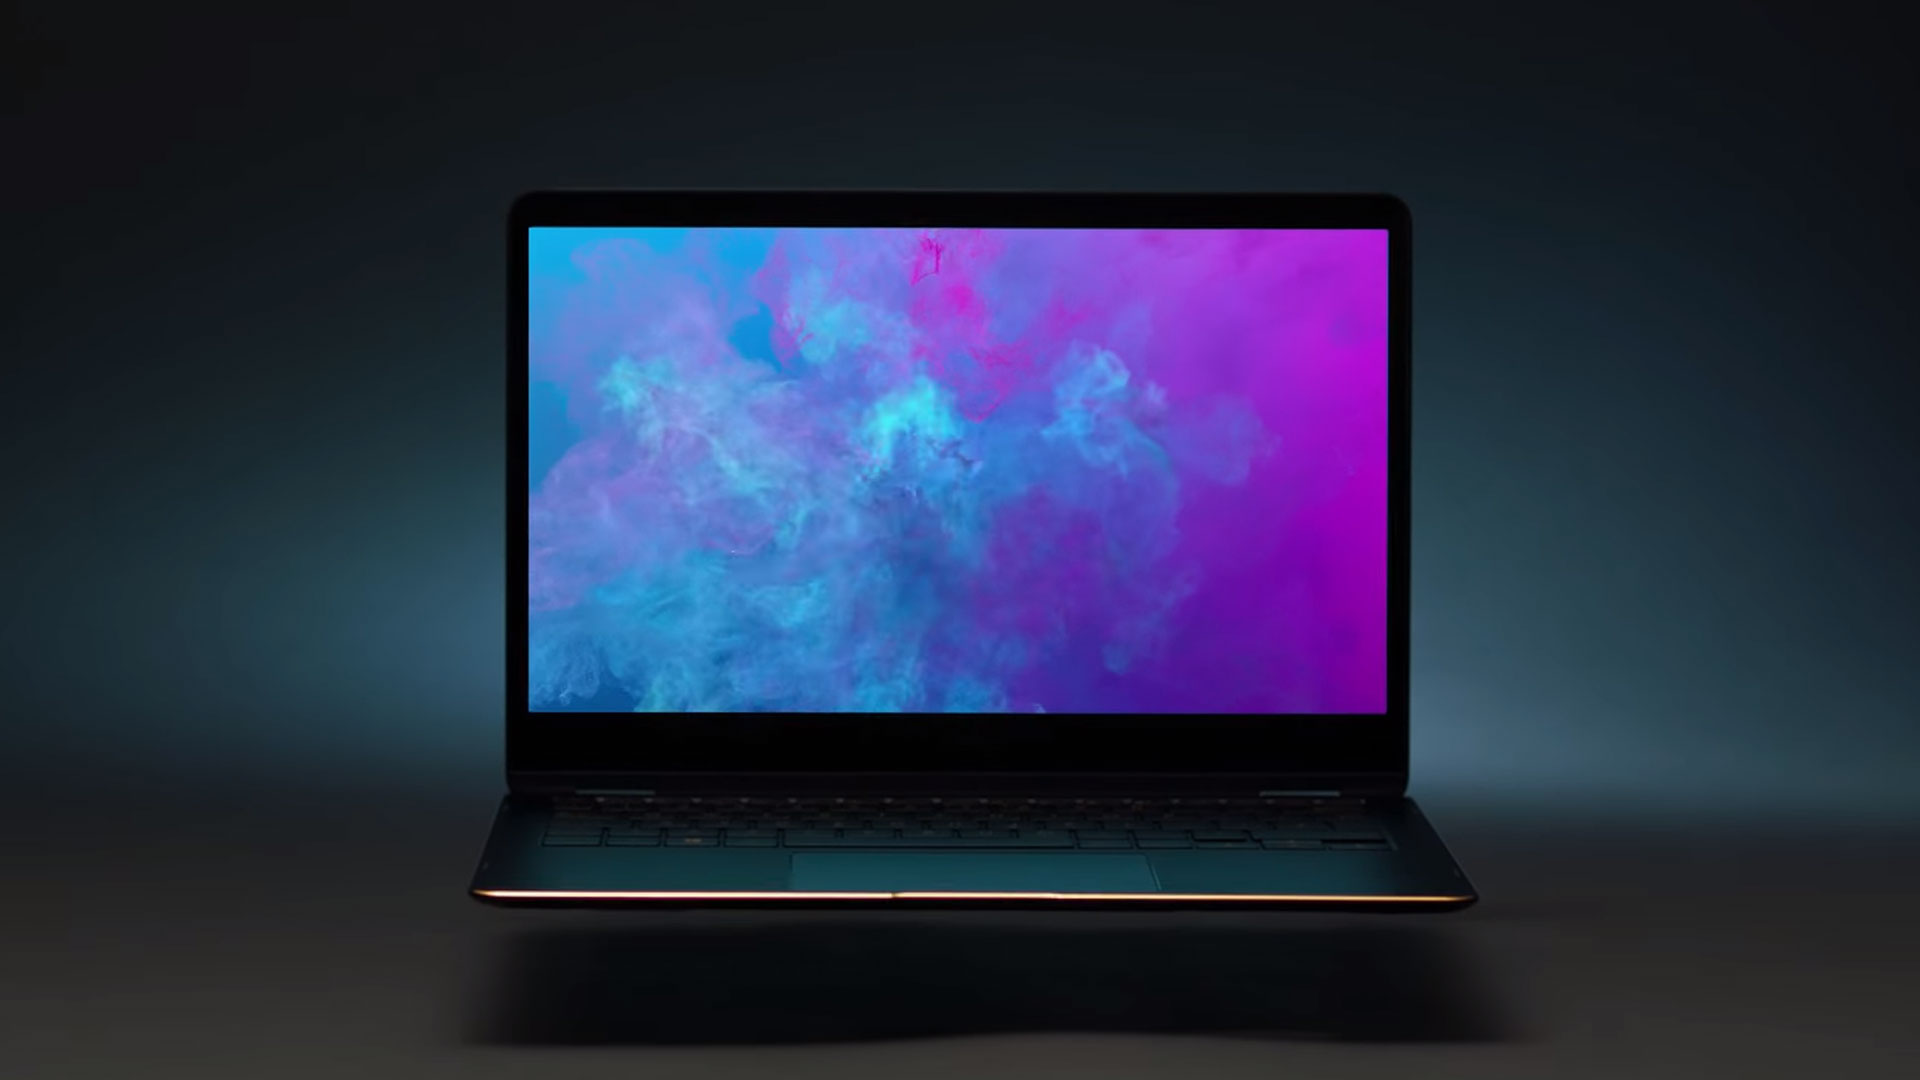 ZenBook Flip S display